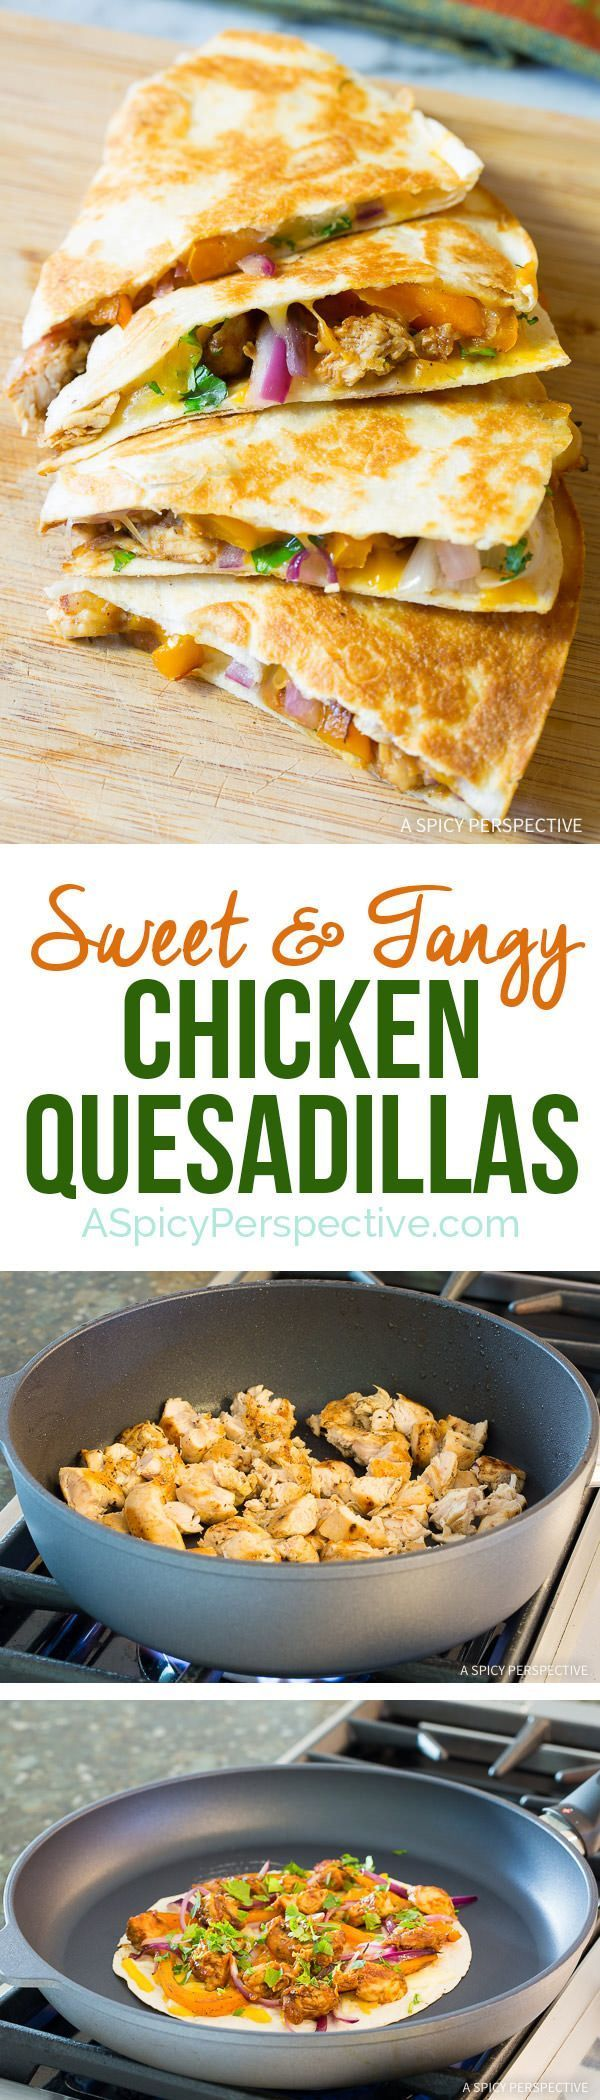 Hf ideas parrillas y asados - Great For Super Bowl 10 Ingredient Sweet And Tangy Chicken Quesadillas Recipe